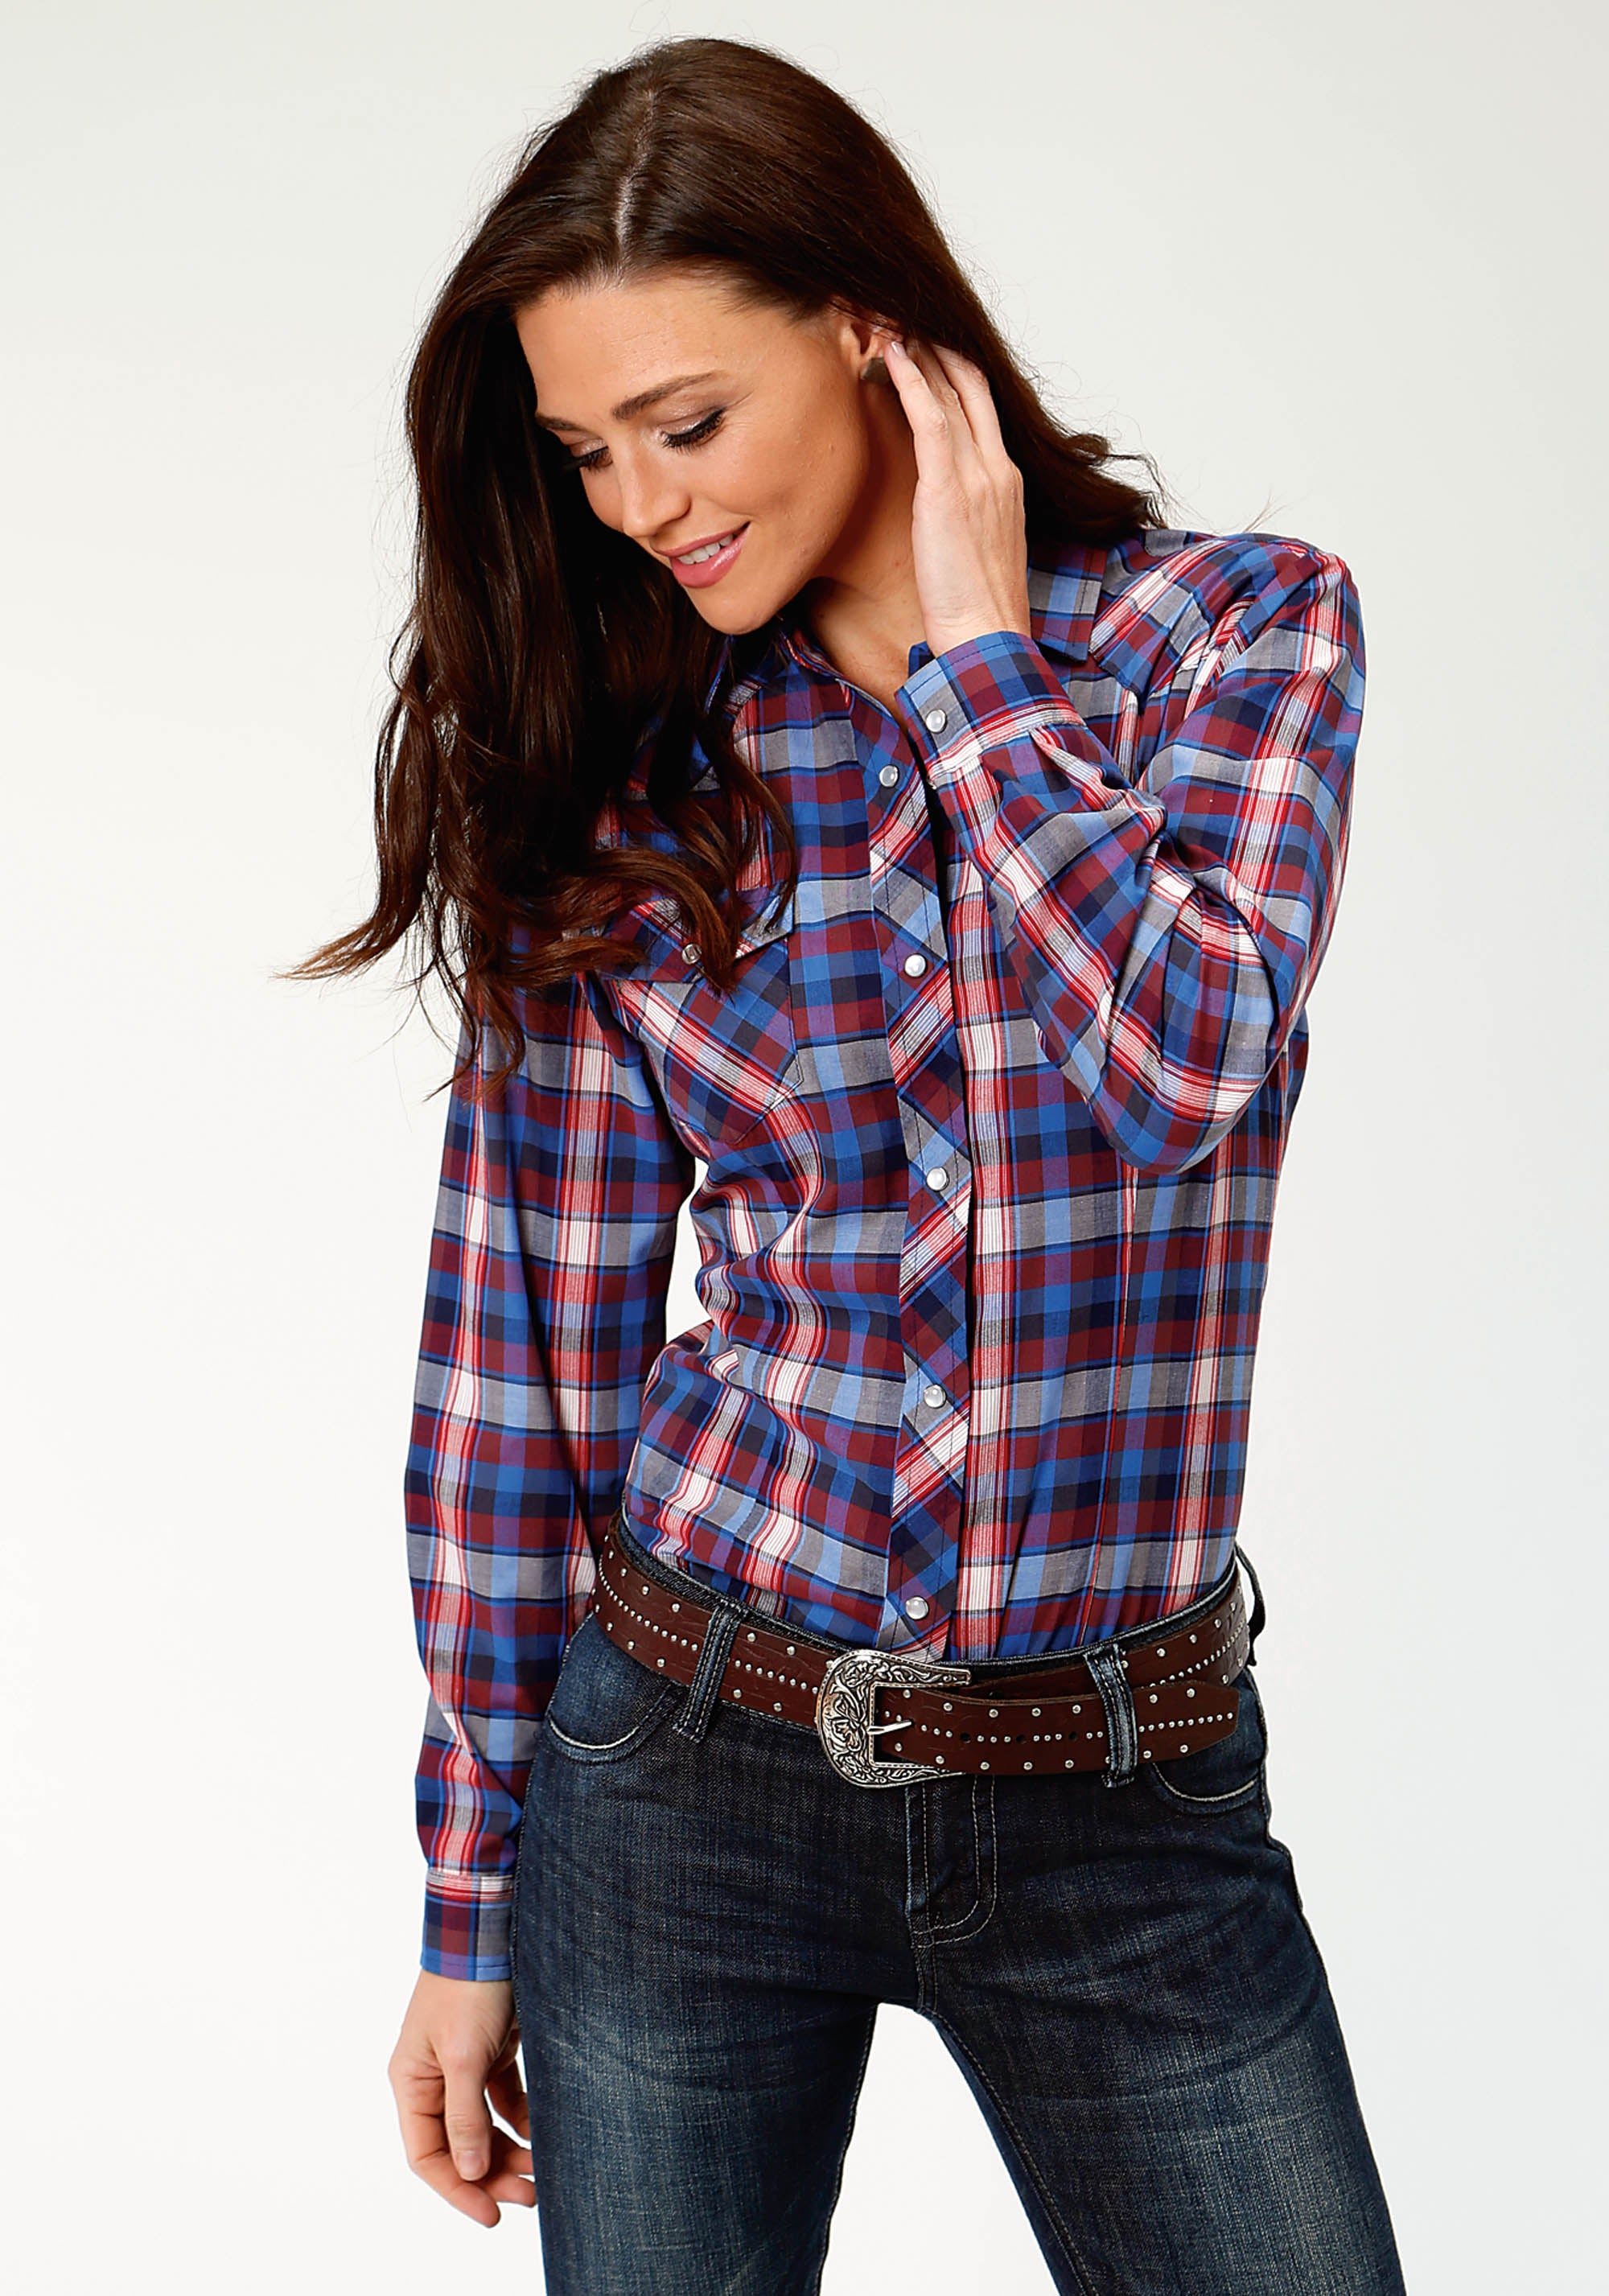 ROPER WOMENS RED 3640 RED, NAVY, & BRIGHT BLUE PLAID KARMAN CLASSICS- 55/45 PLAID LONG SLEEVE